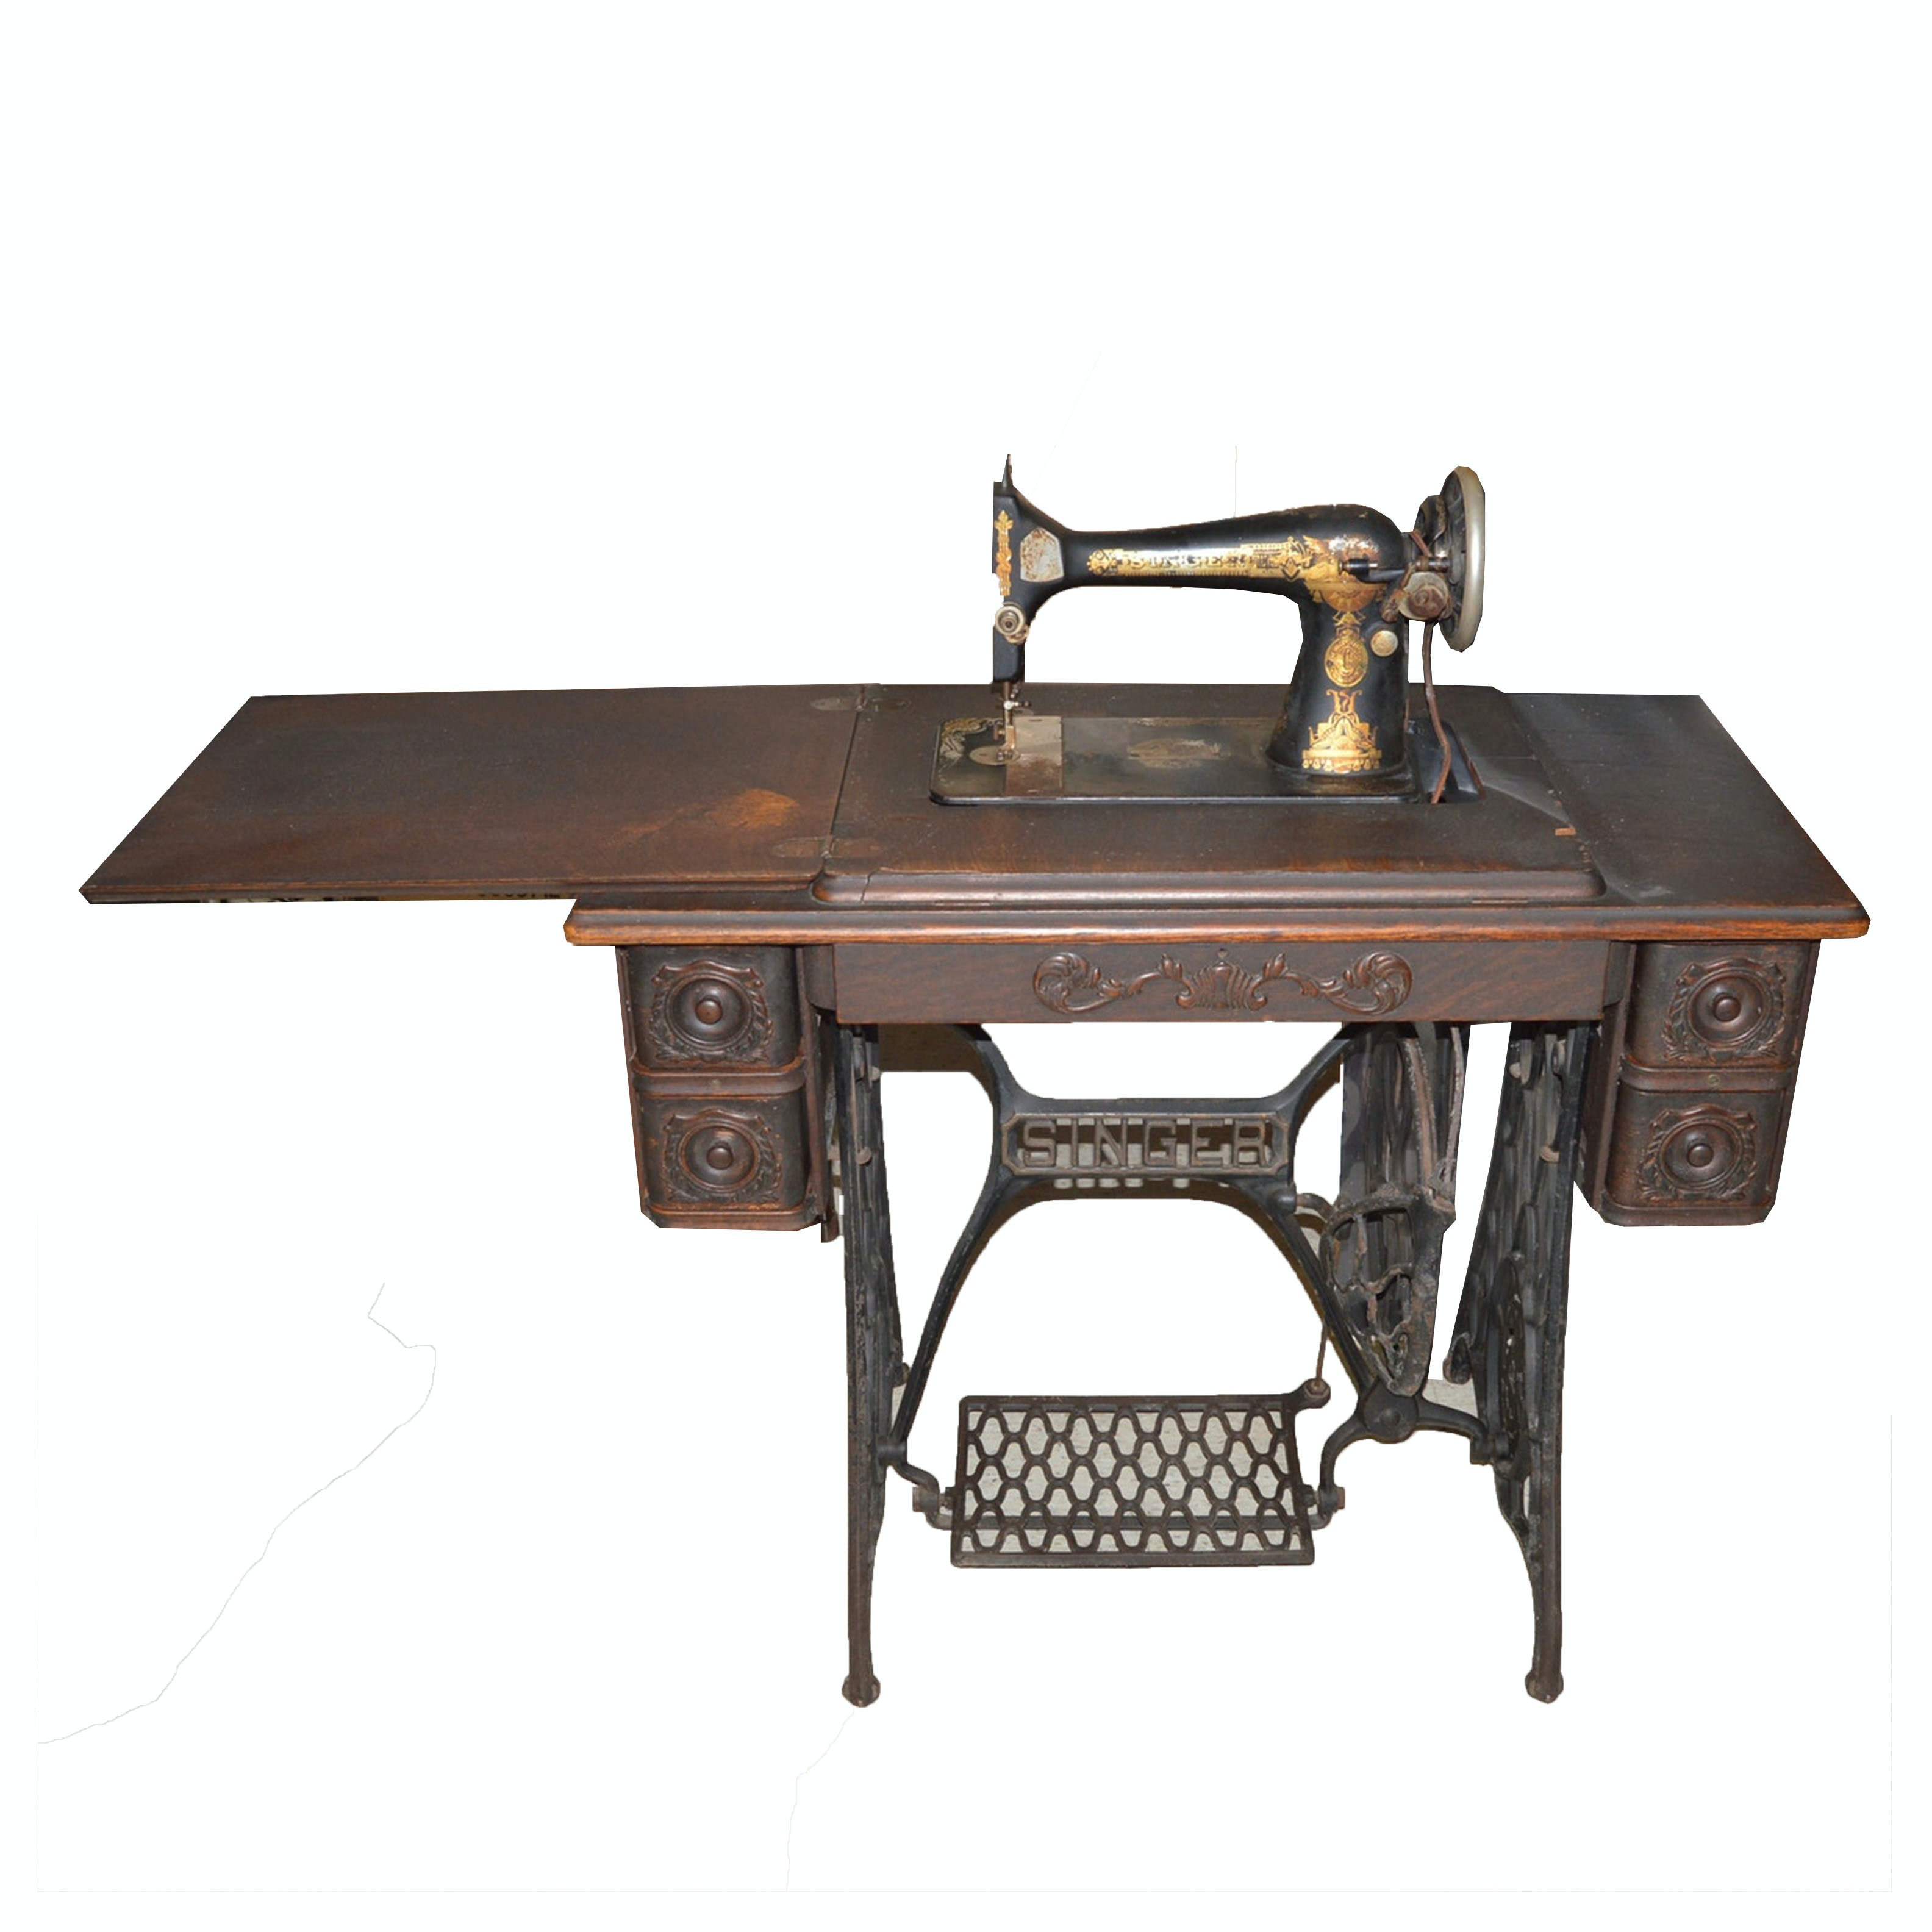 Antique Singer Sewing Machine and Table, Circa 1914